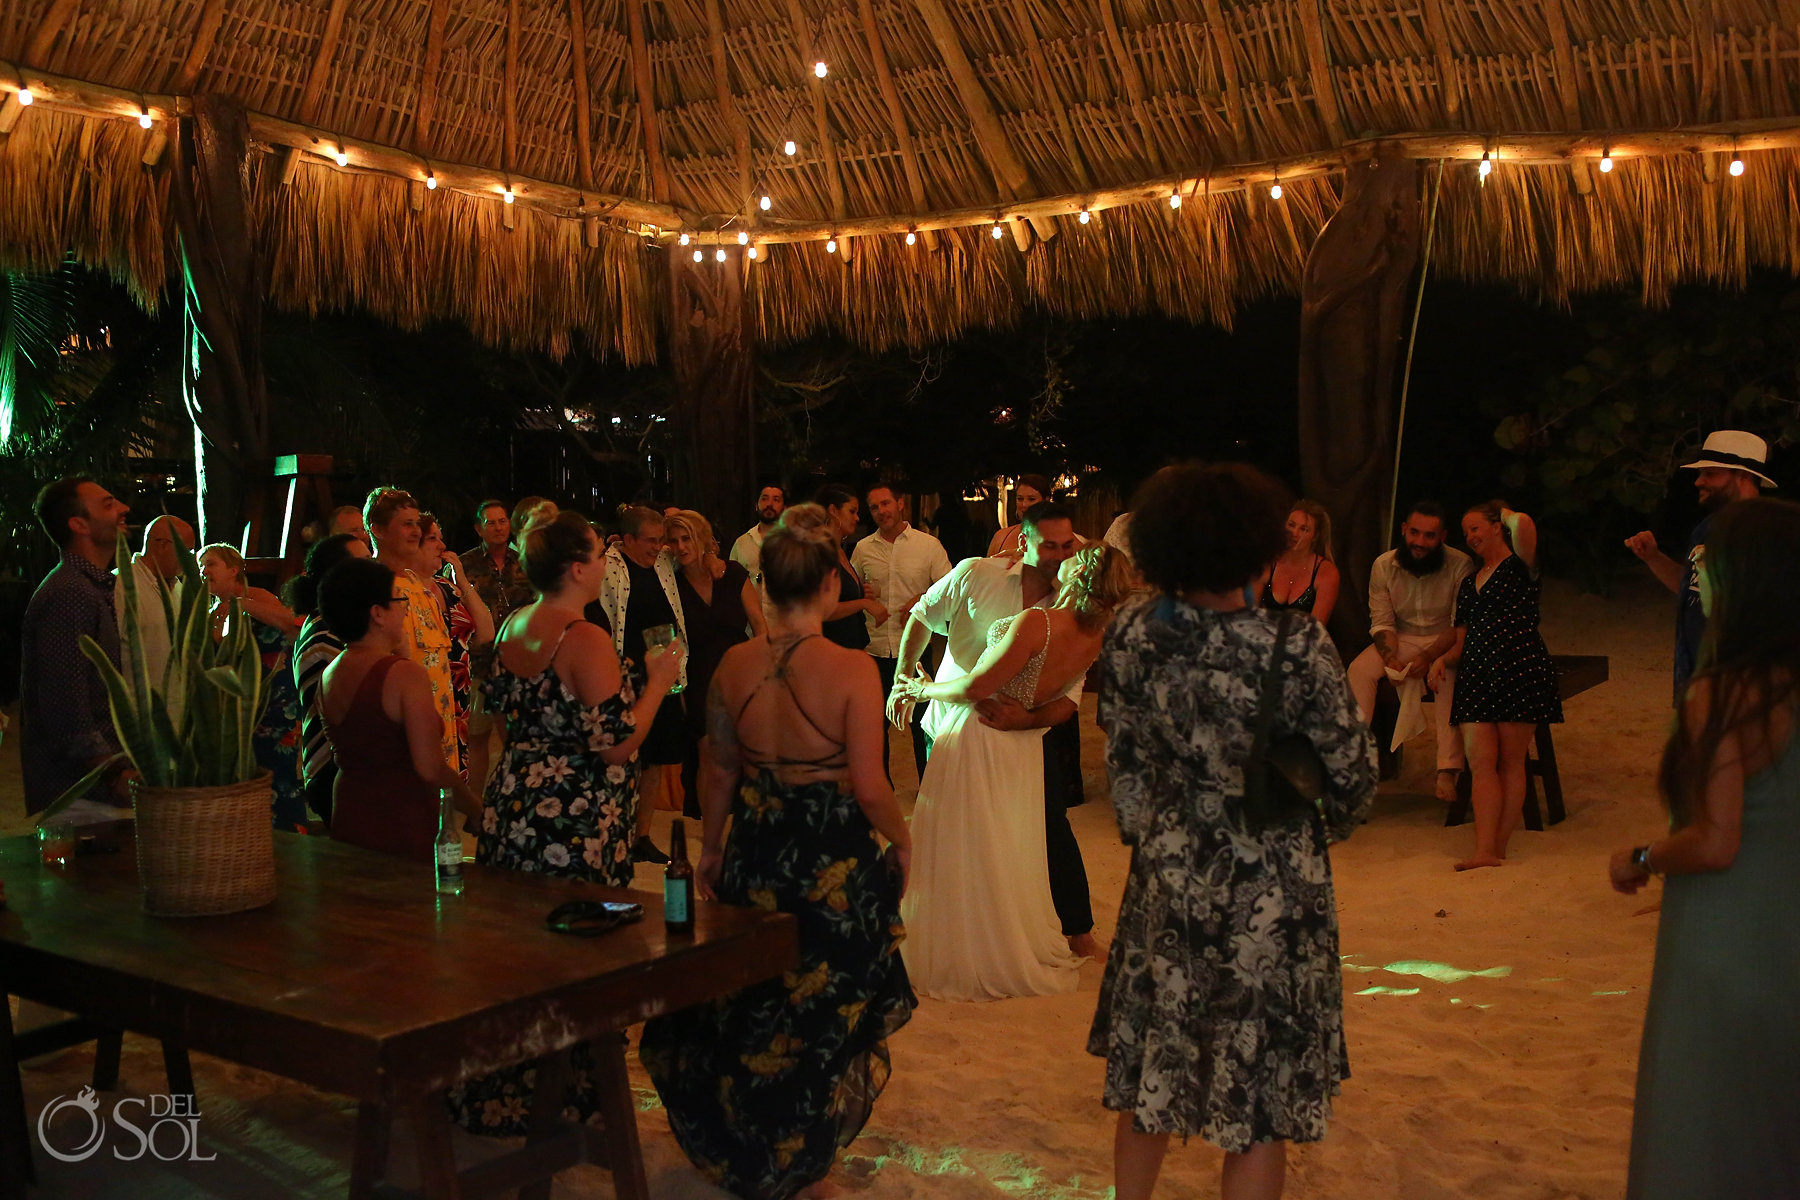 Akin Tulum Wedding reception party outside palapa